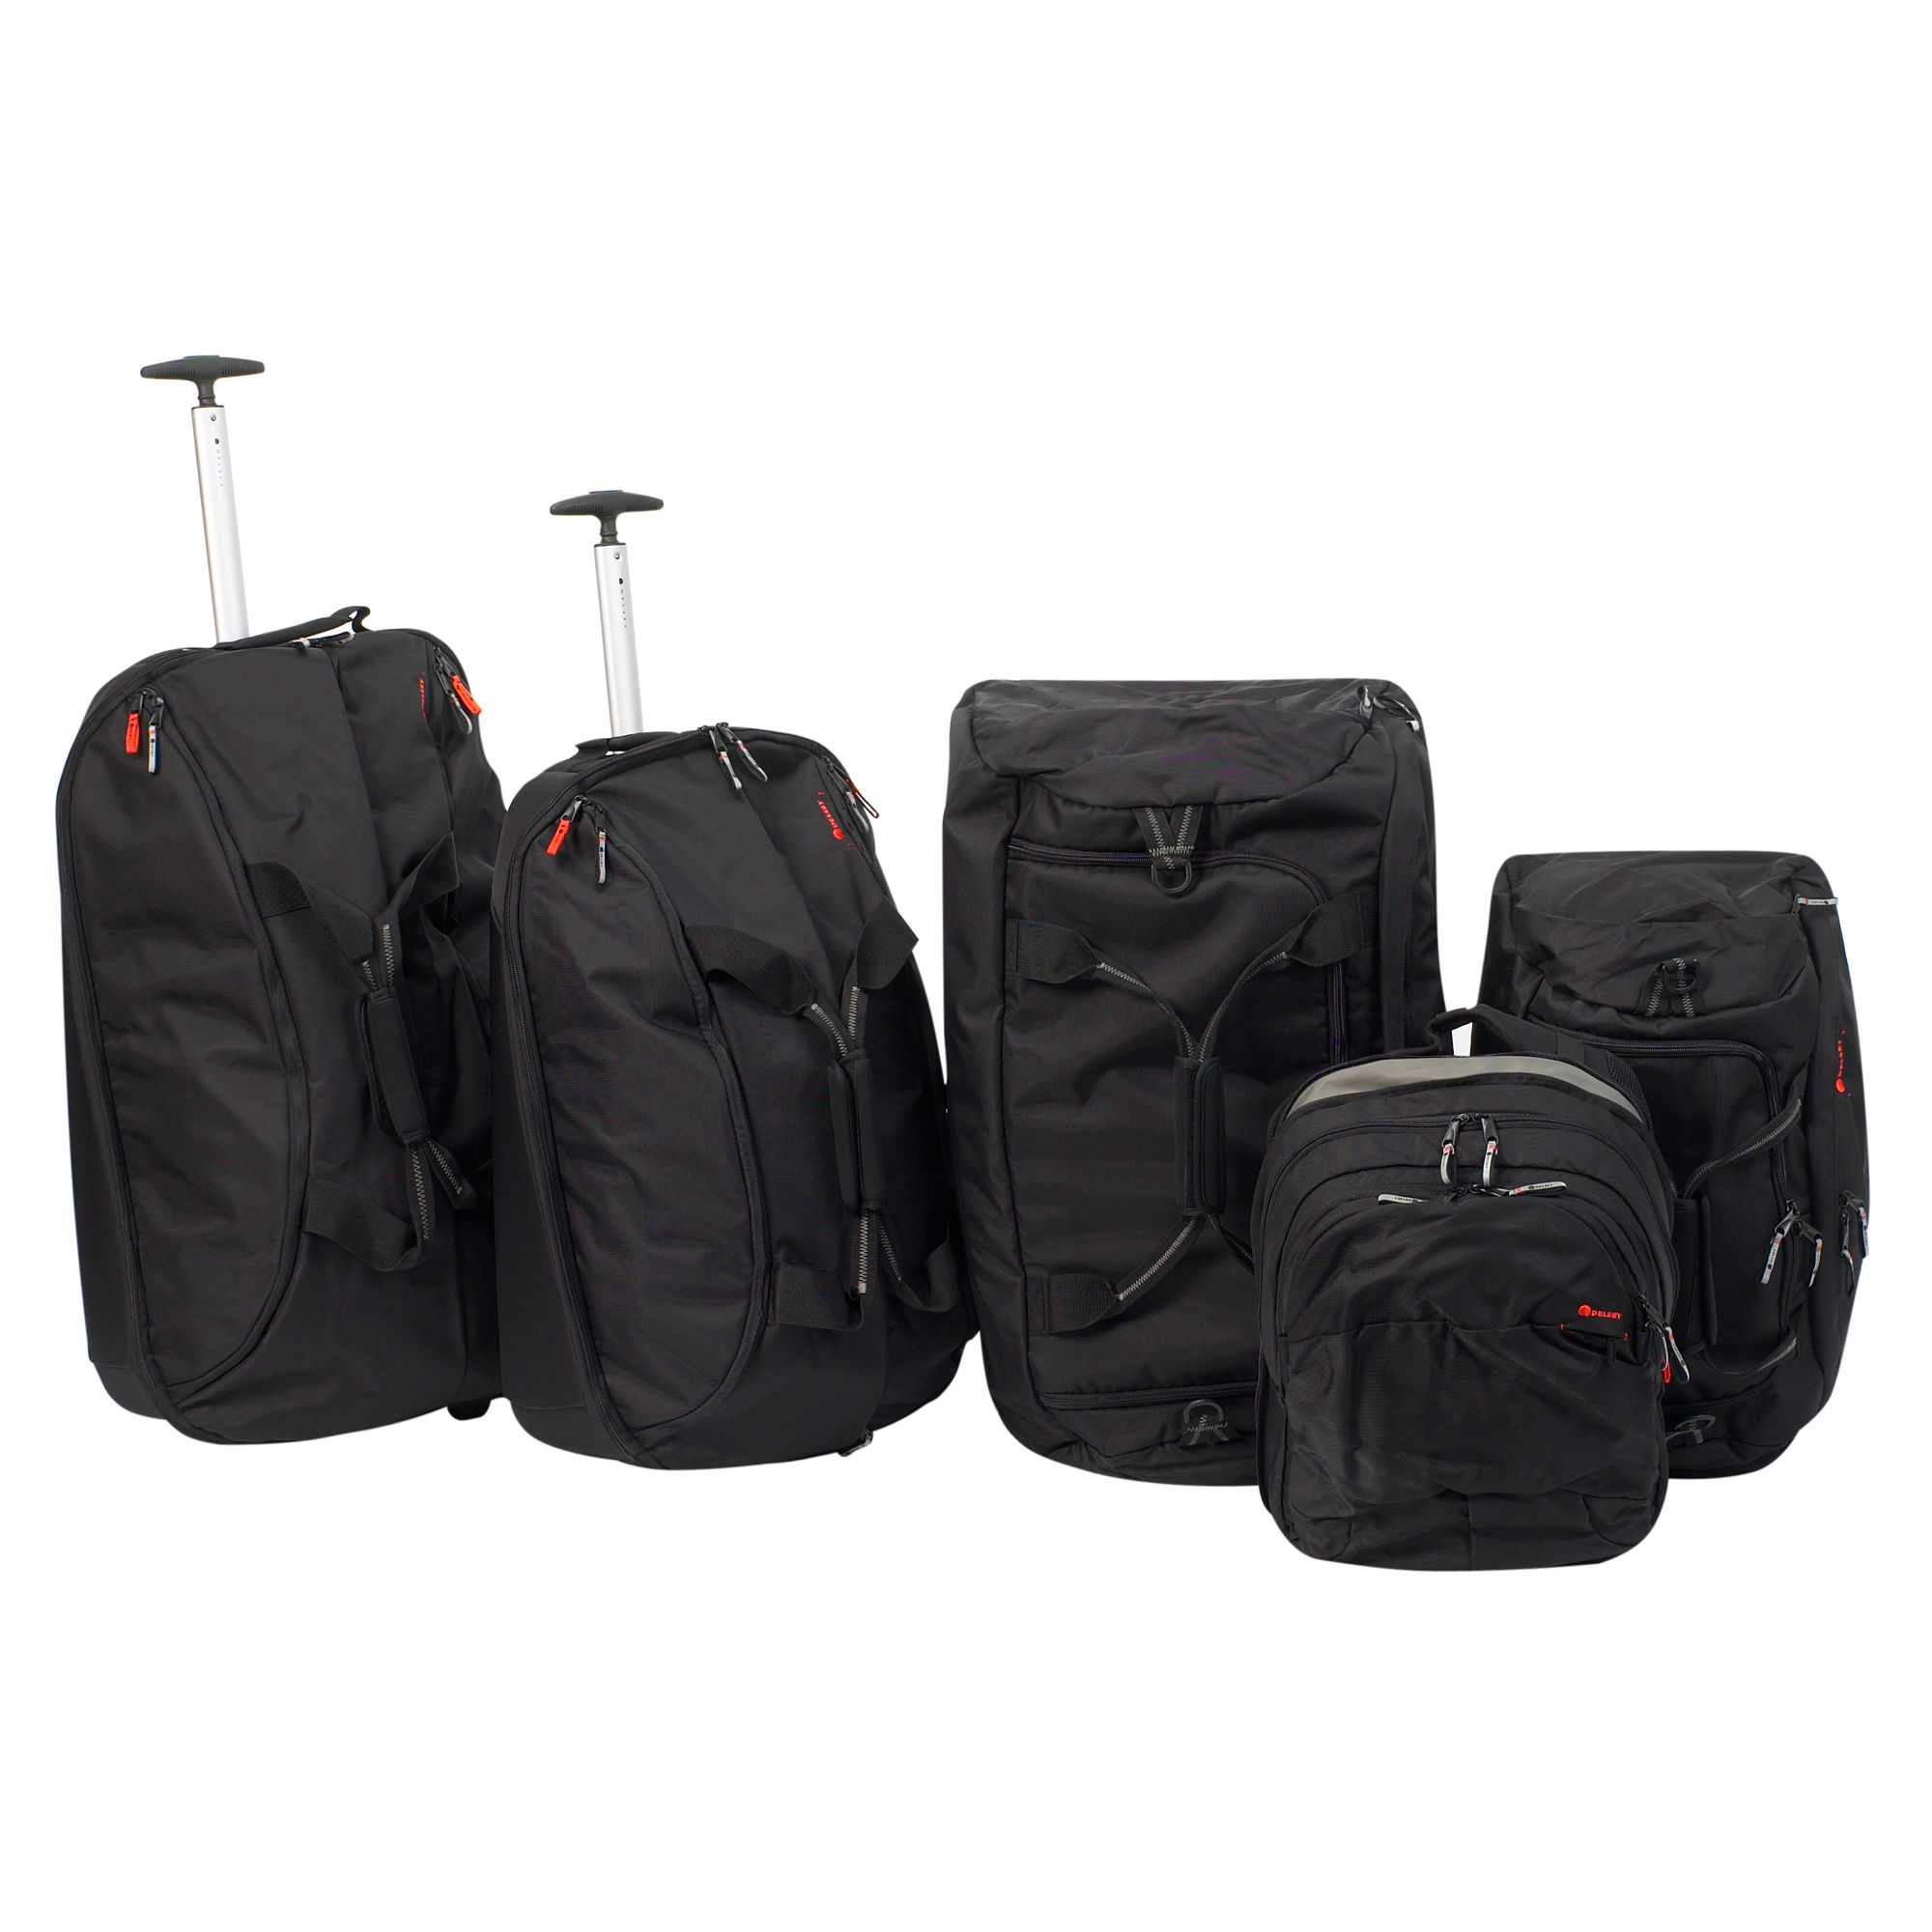 Medium duffle trolley